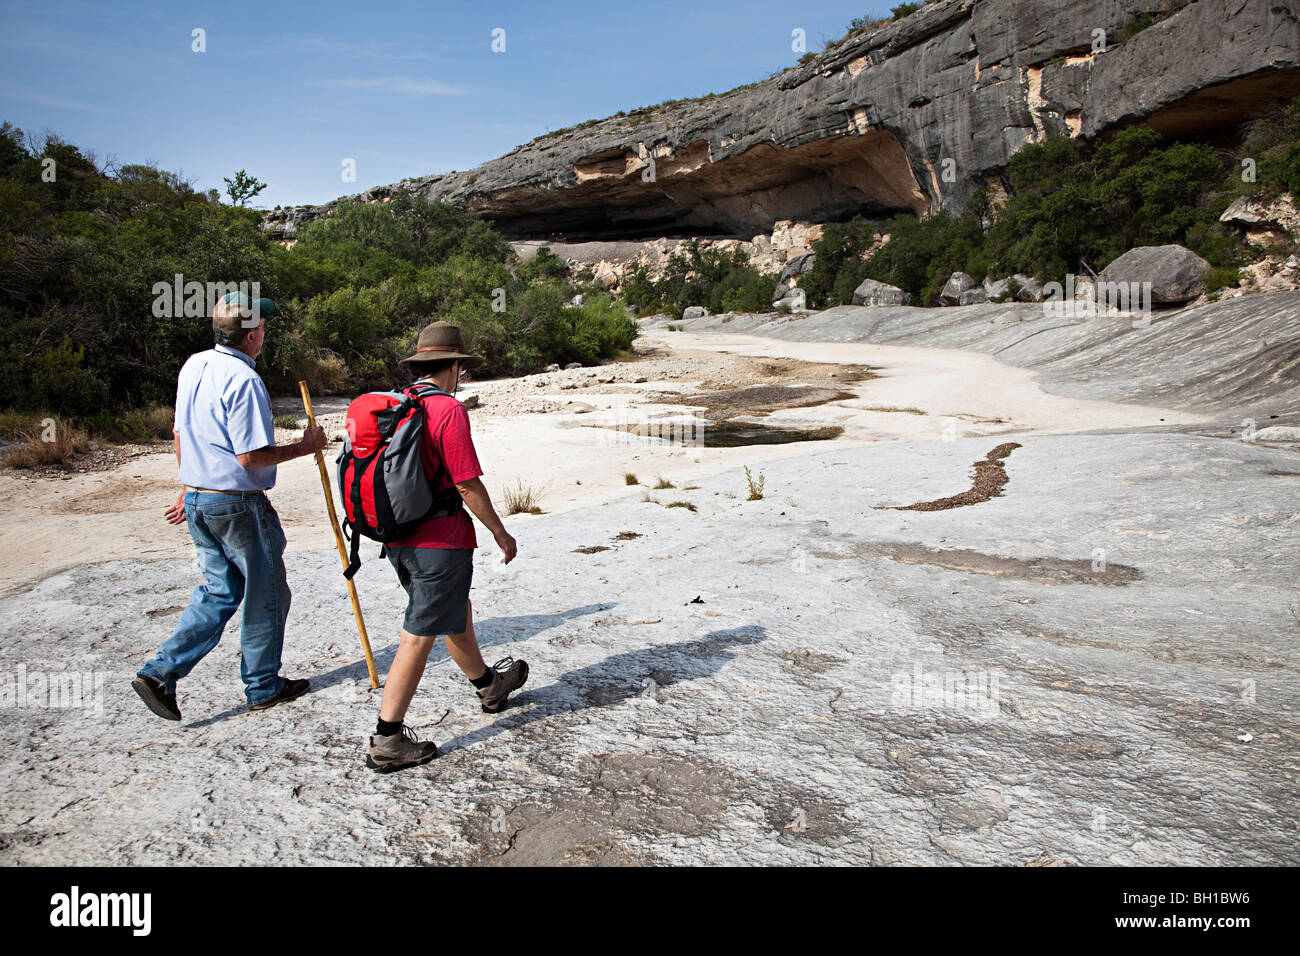 Man and woman walking in dry river bed Seminole Canyon Texas USA Stock Photo